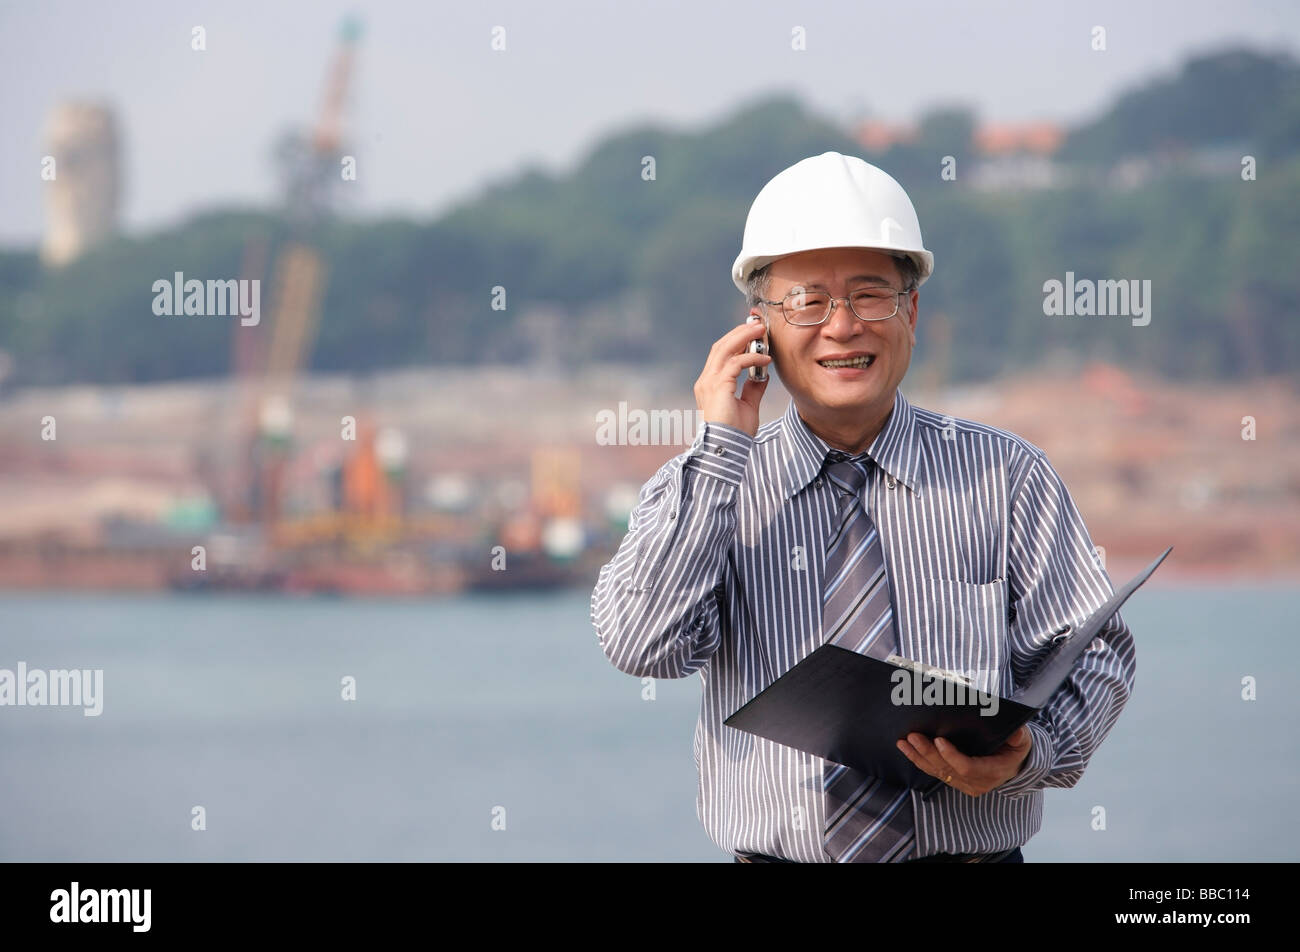 Man with helmet, talking on the phone - Stock Image